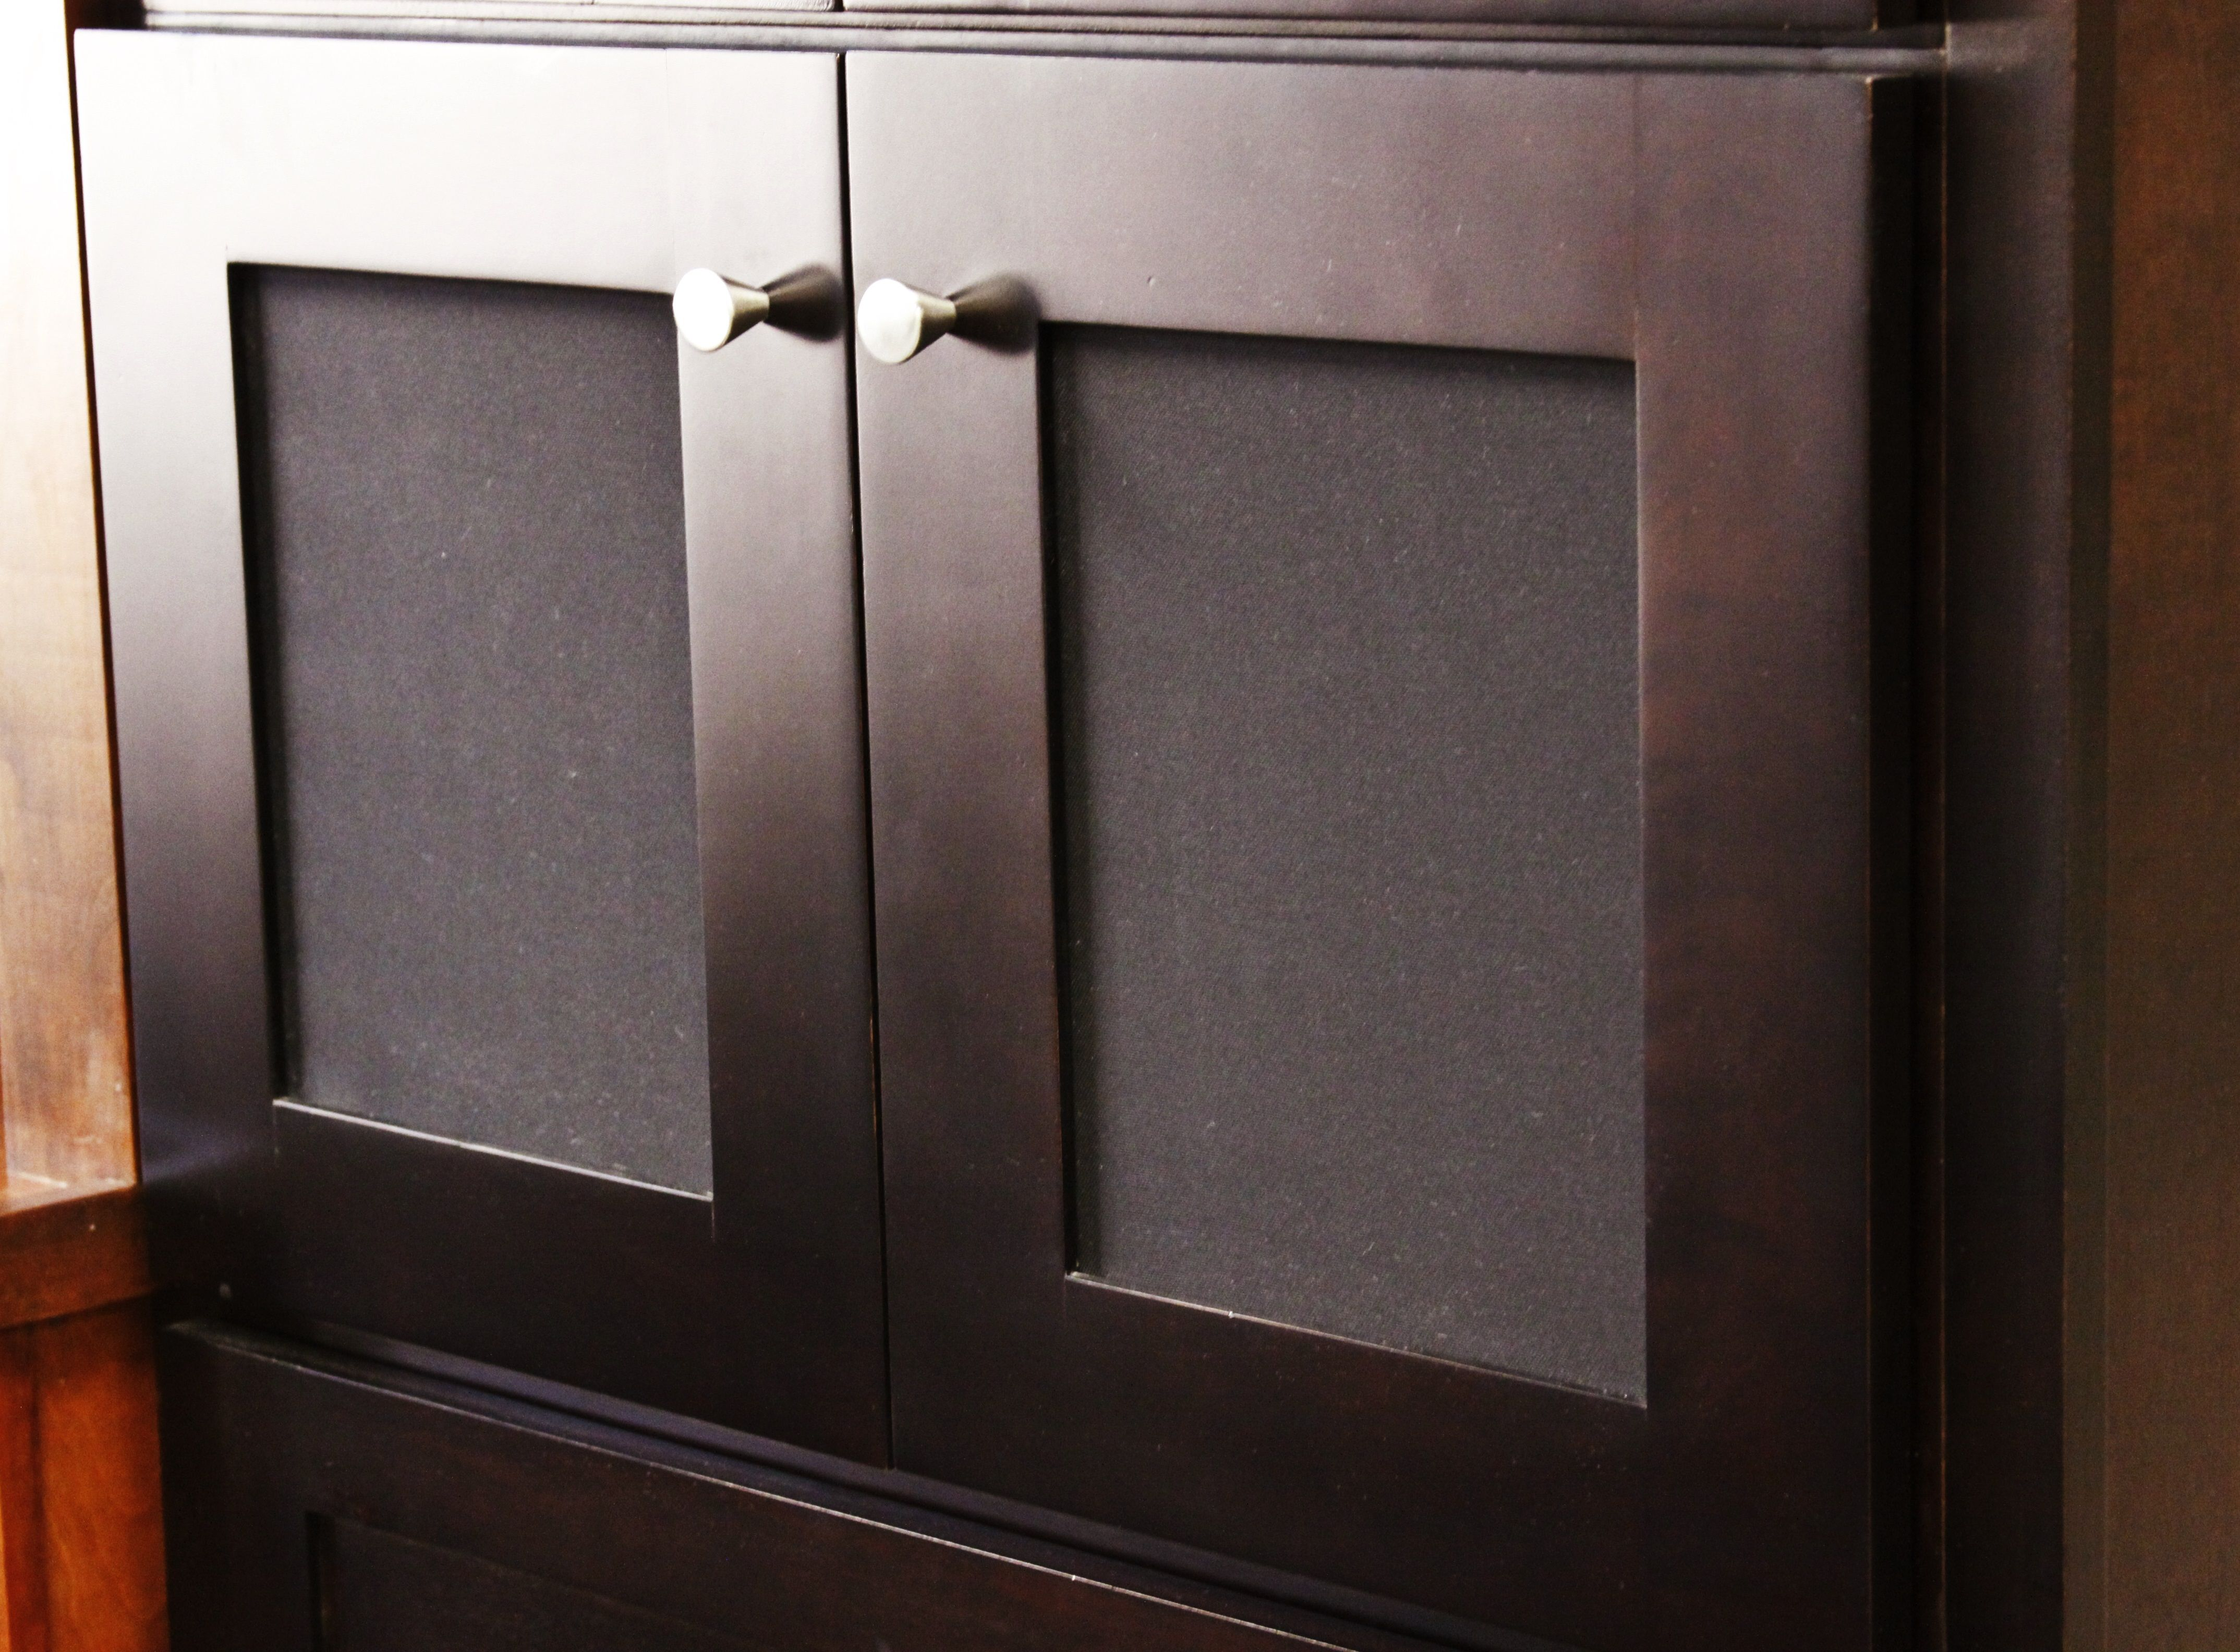 Speaker Cloth allows you to make those cabinets look elegant while ...